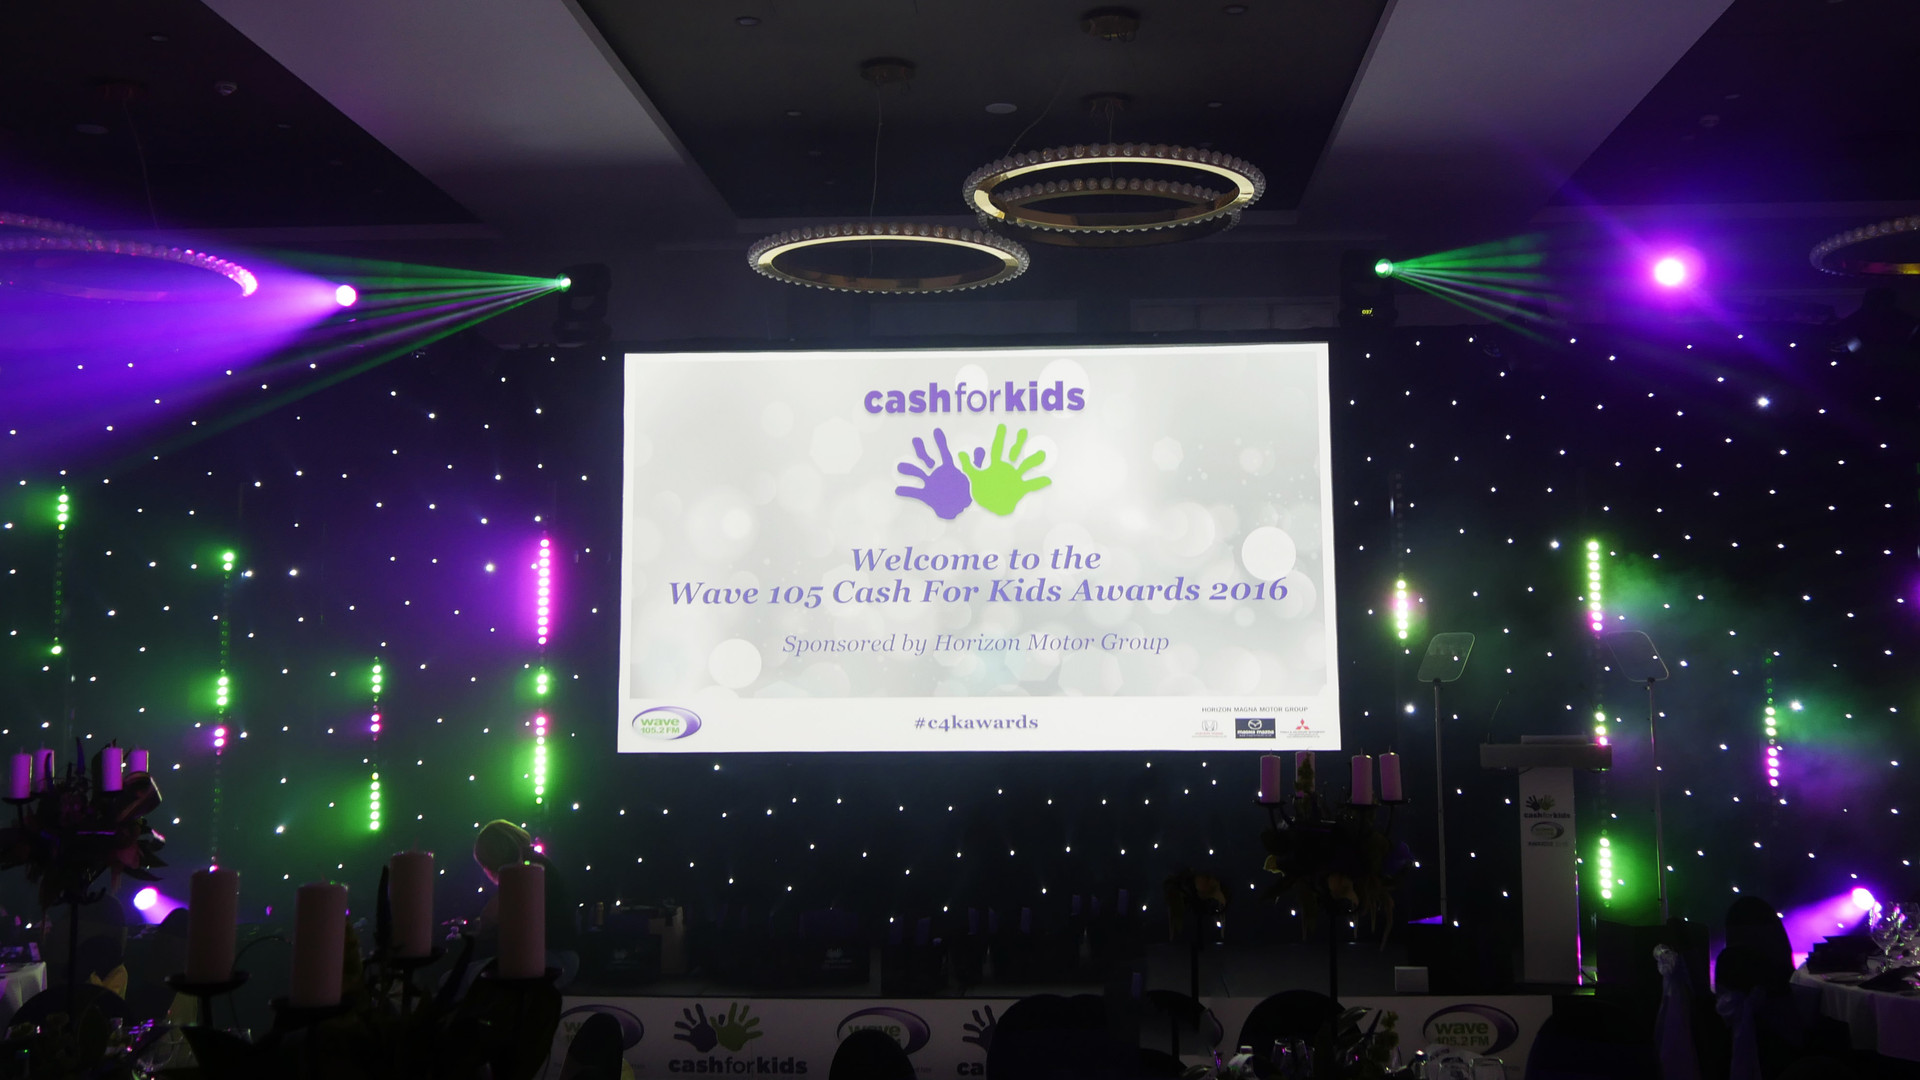 Wave Cash 4 Kids